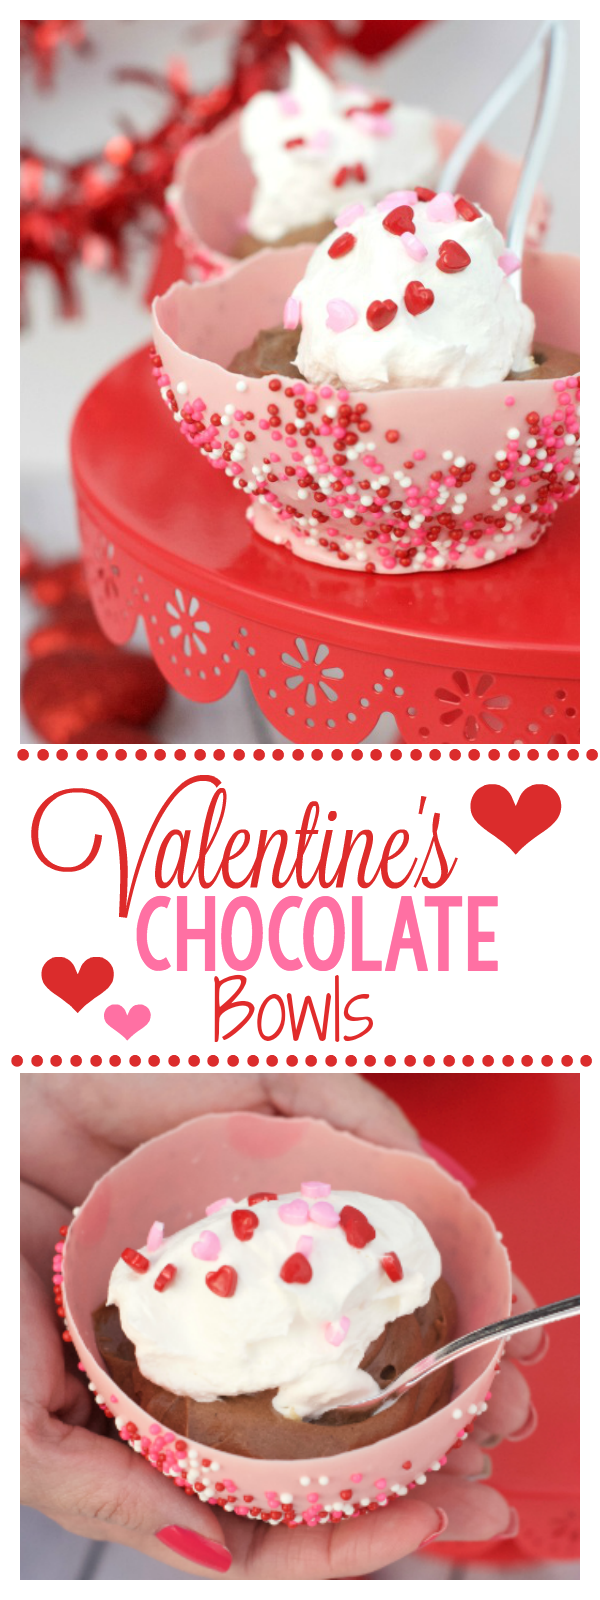 Valentine's Chocolate Bowls: How to Make a Chocolate Bowl from a Balloon